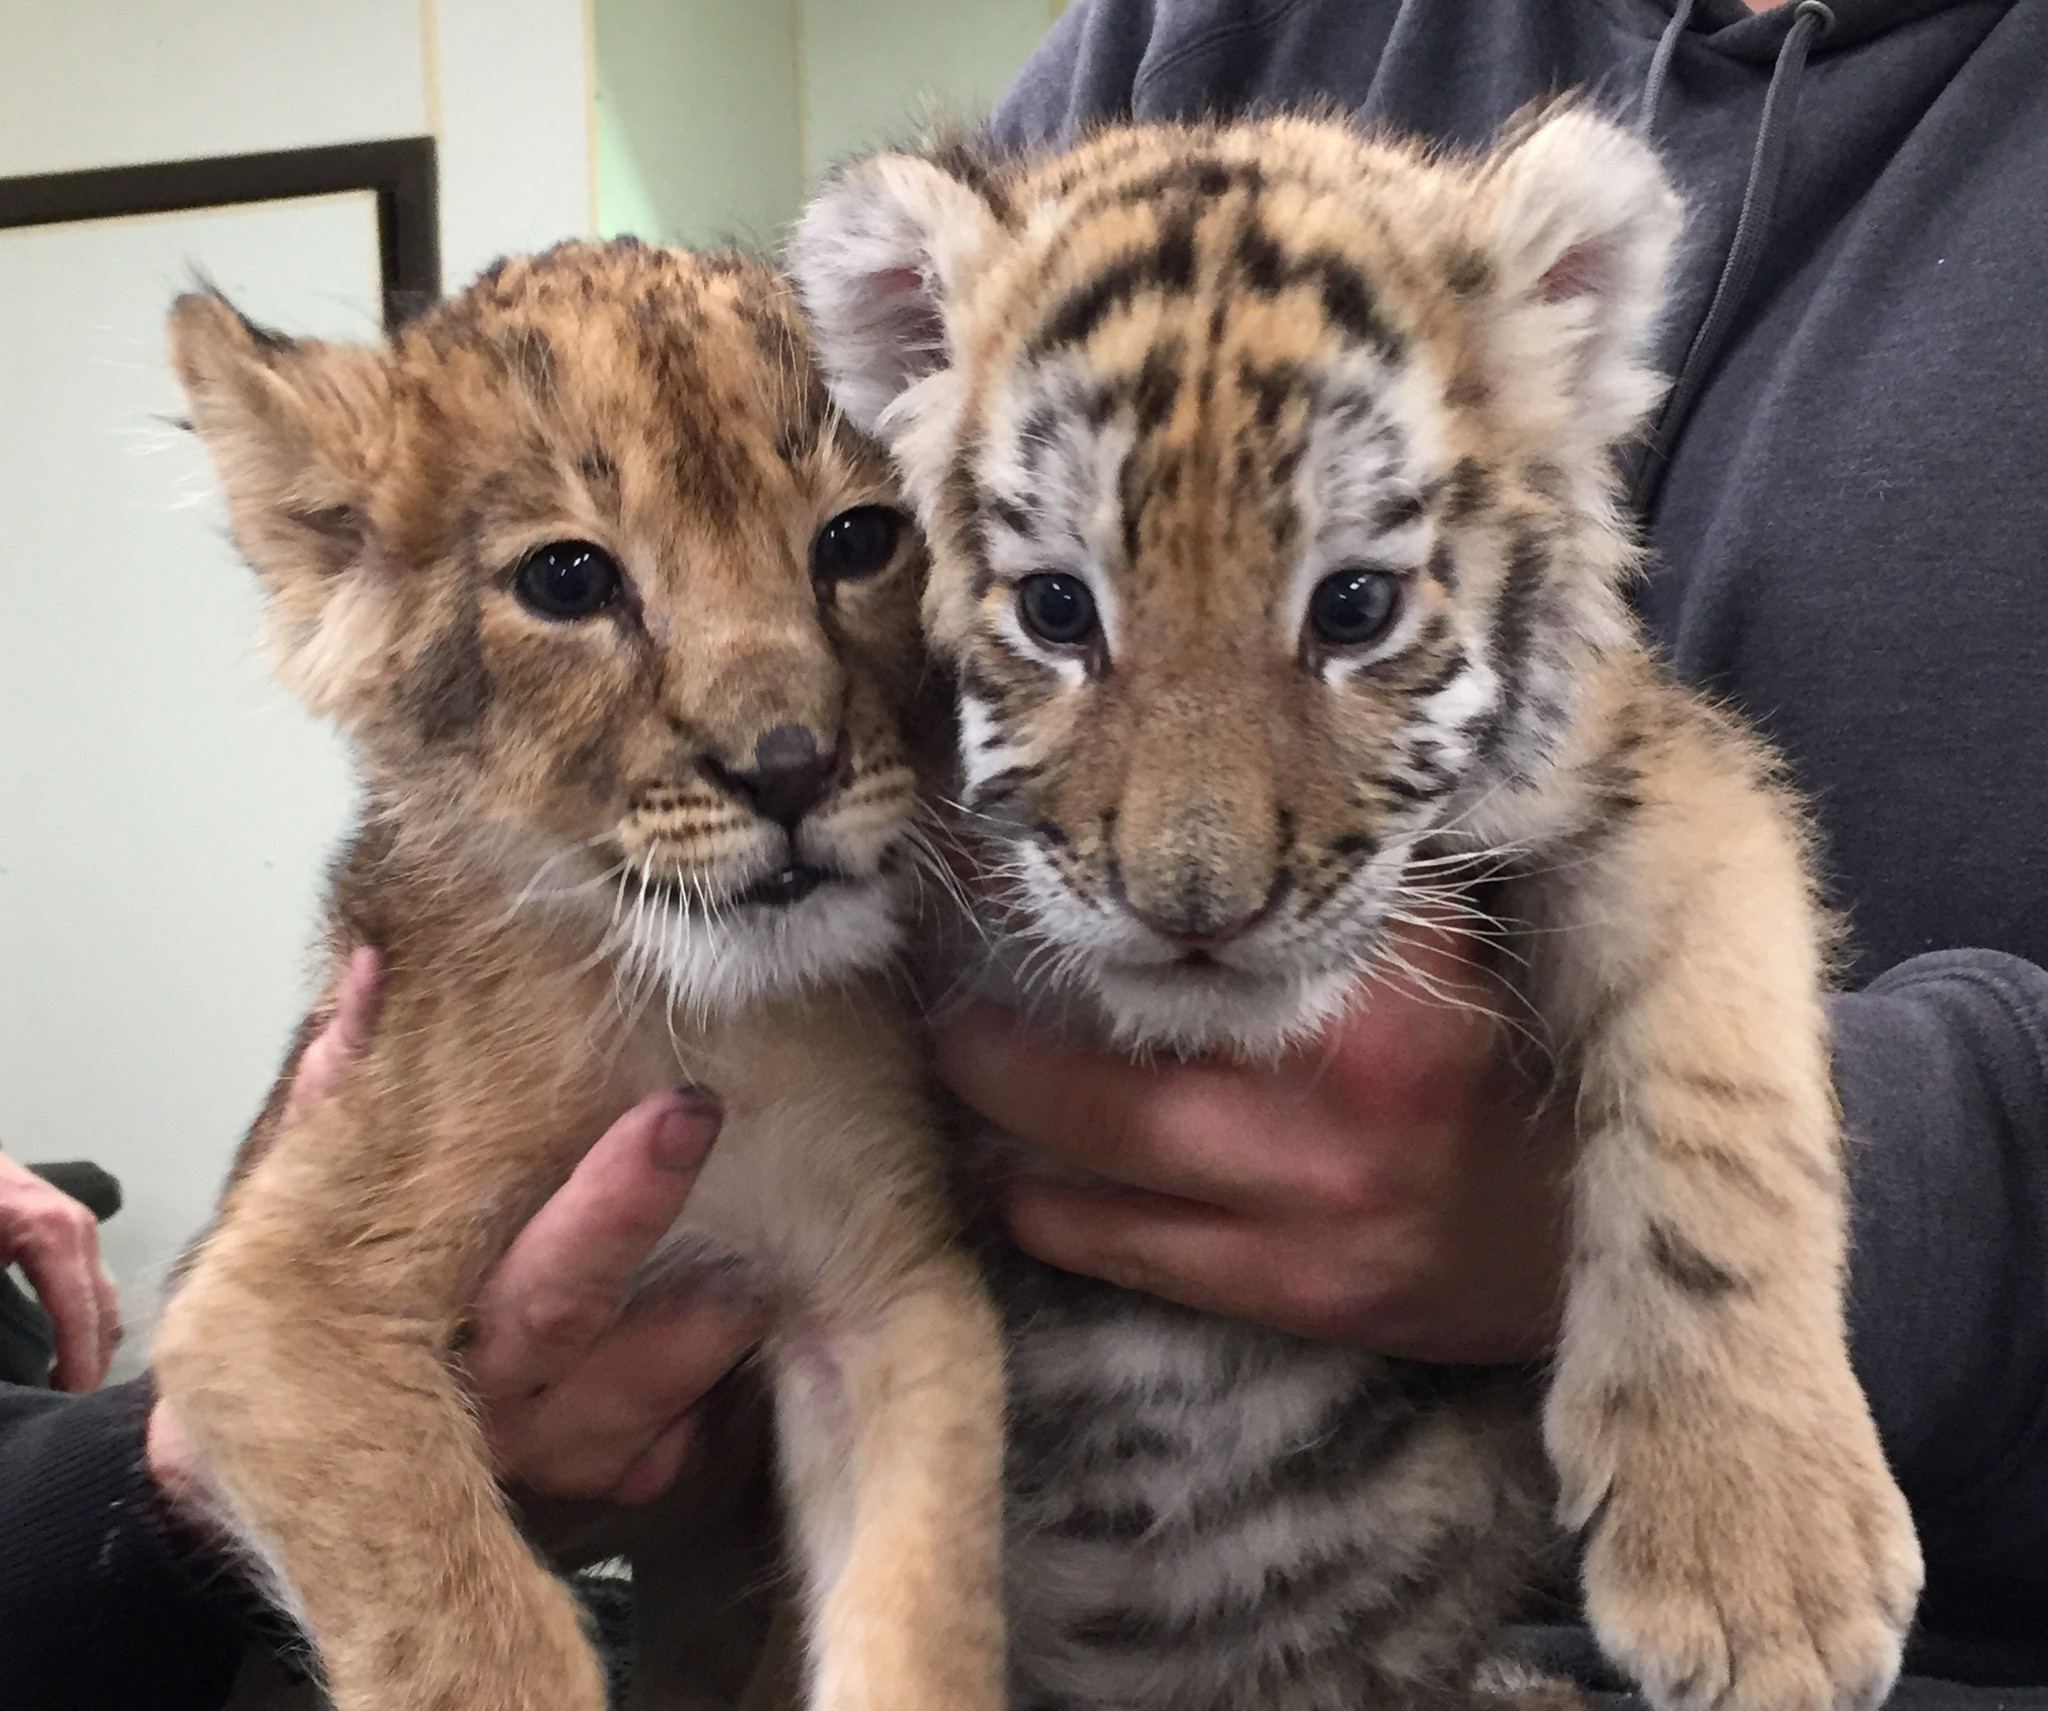 Baby tiger and lion being raised together at Six Flags ... Cute Siberian Tiger Cubs